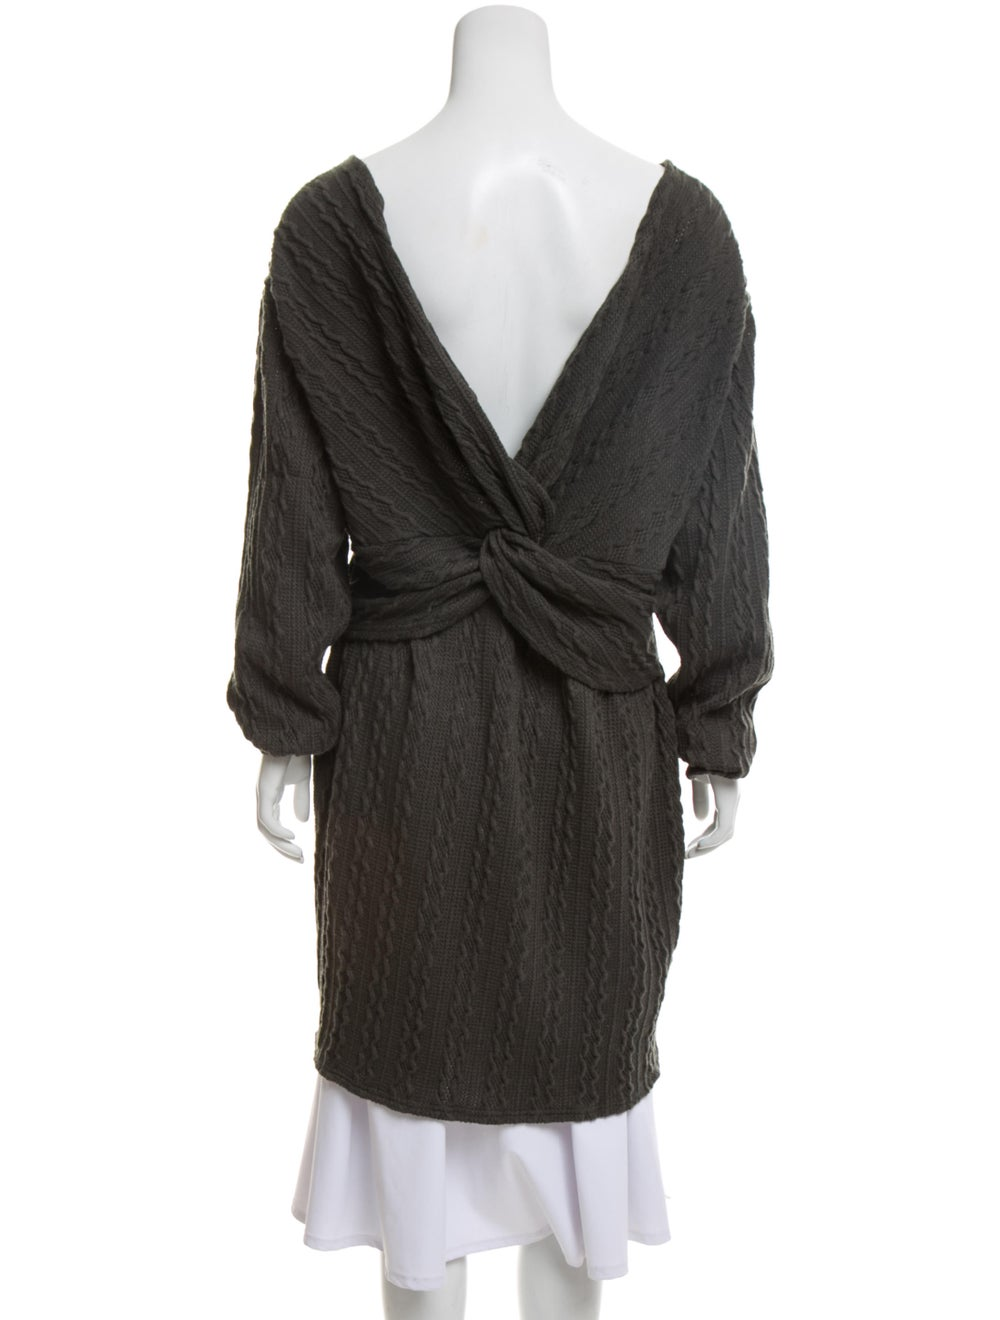 Walter Baker Cable-Knit Sweater Dress green - image 3